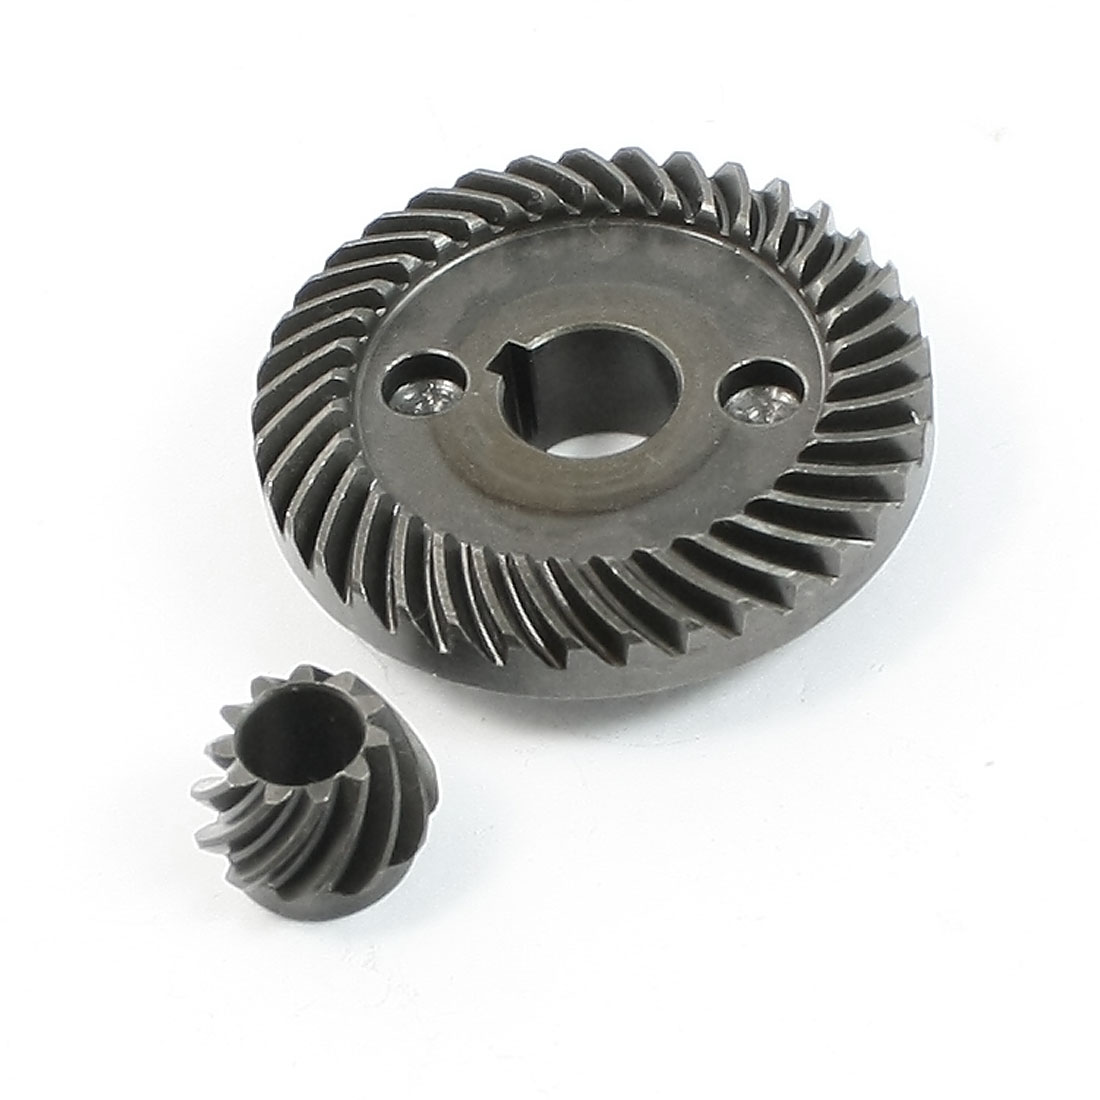 Repair Part Spiral Bevel Gear Pinion Set for LG 100 Angle Grinder